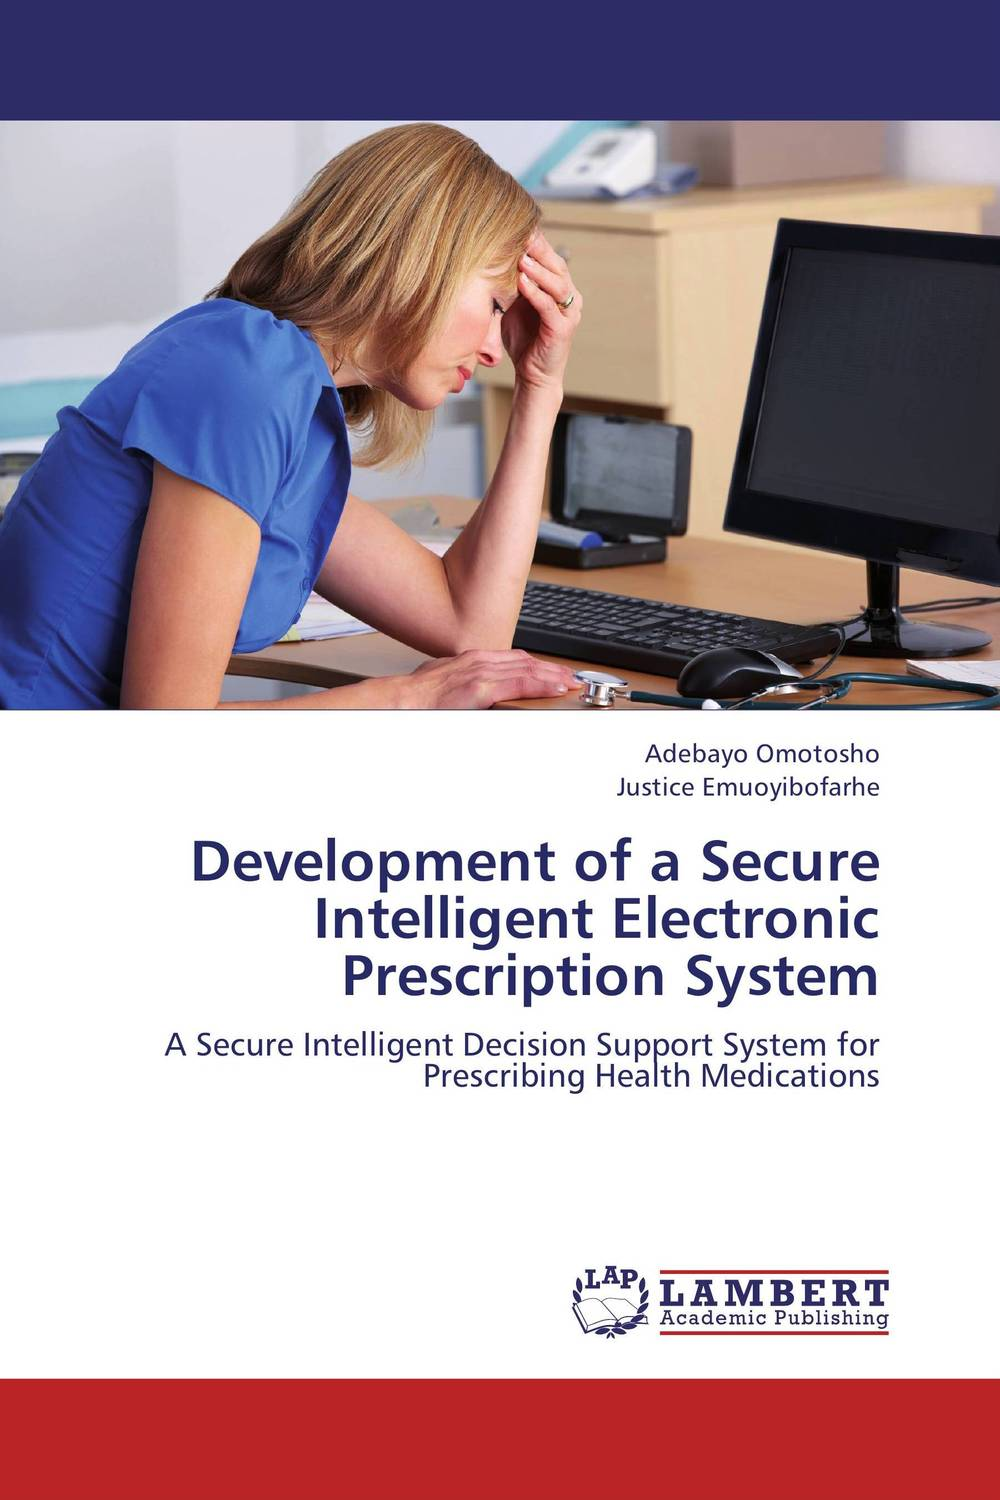 Development of a Secure Intelligent Electronic Prescription System